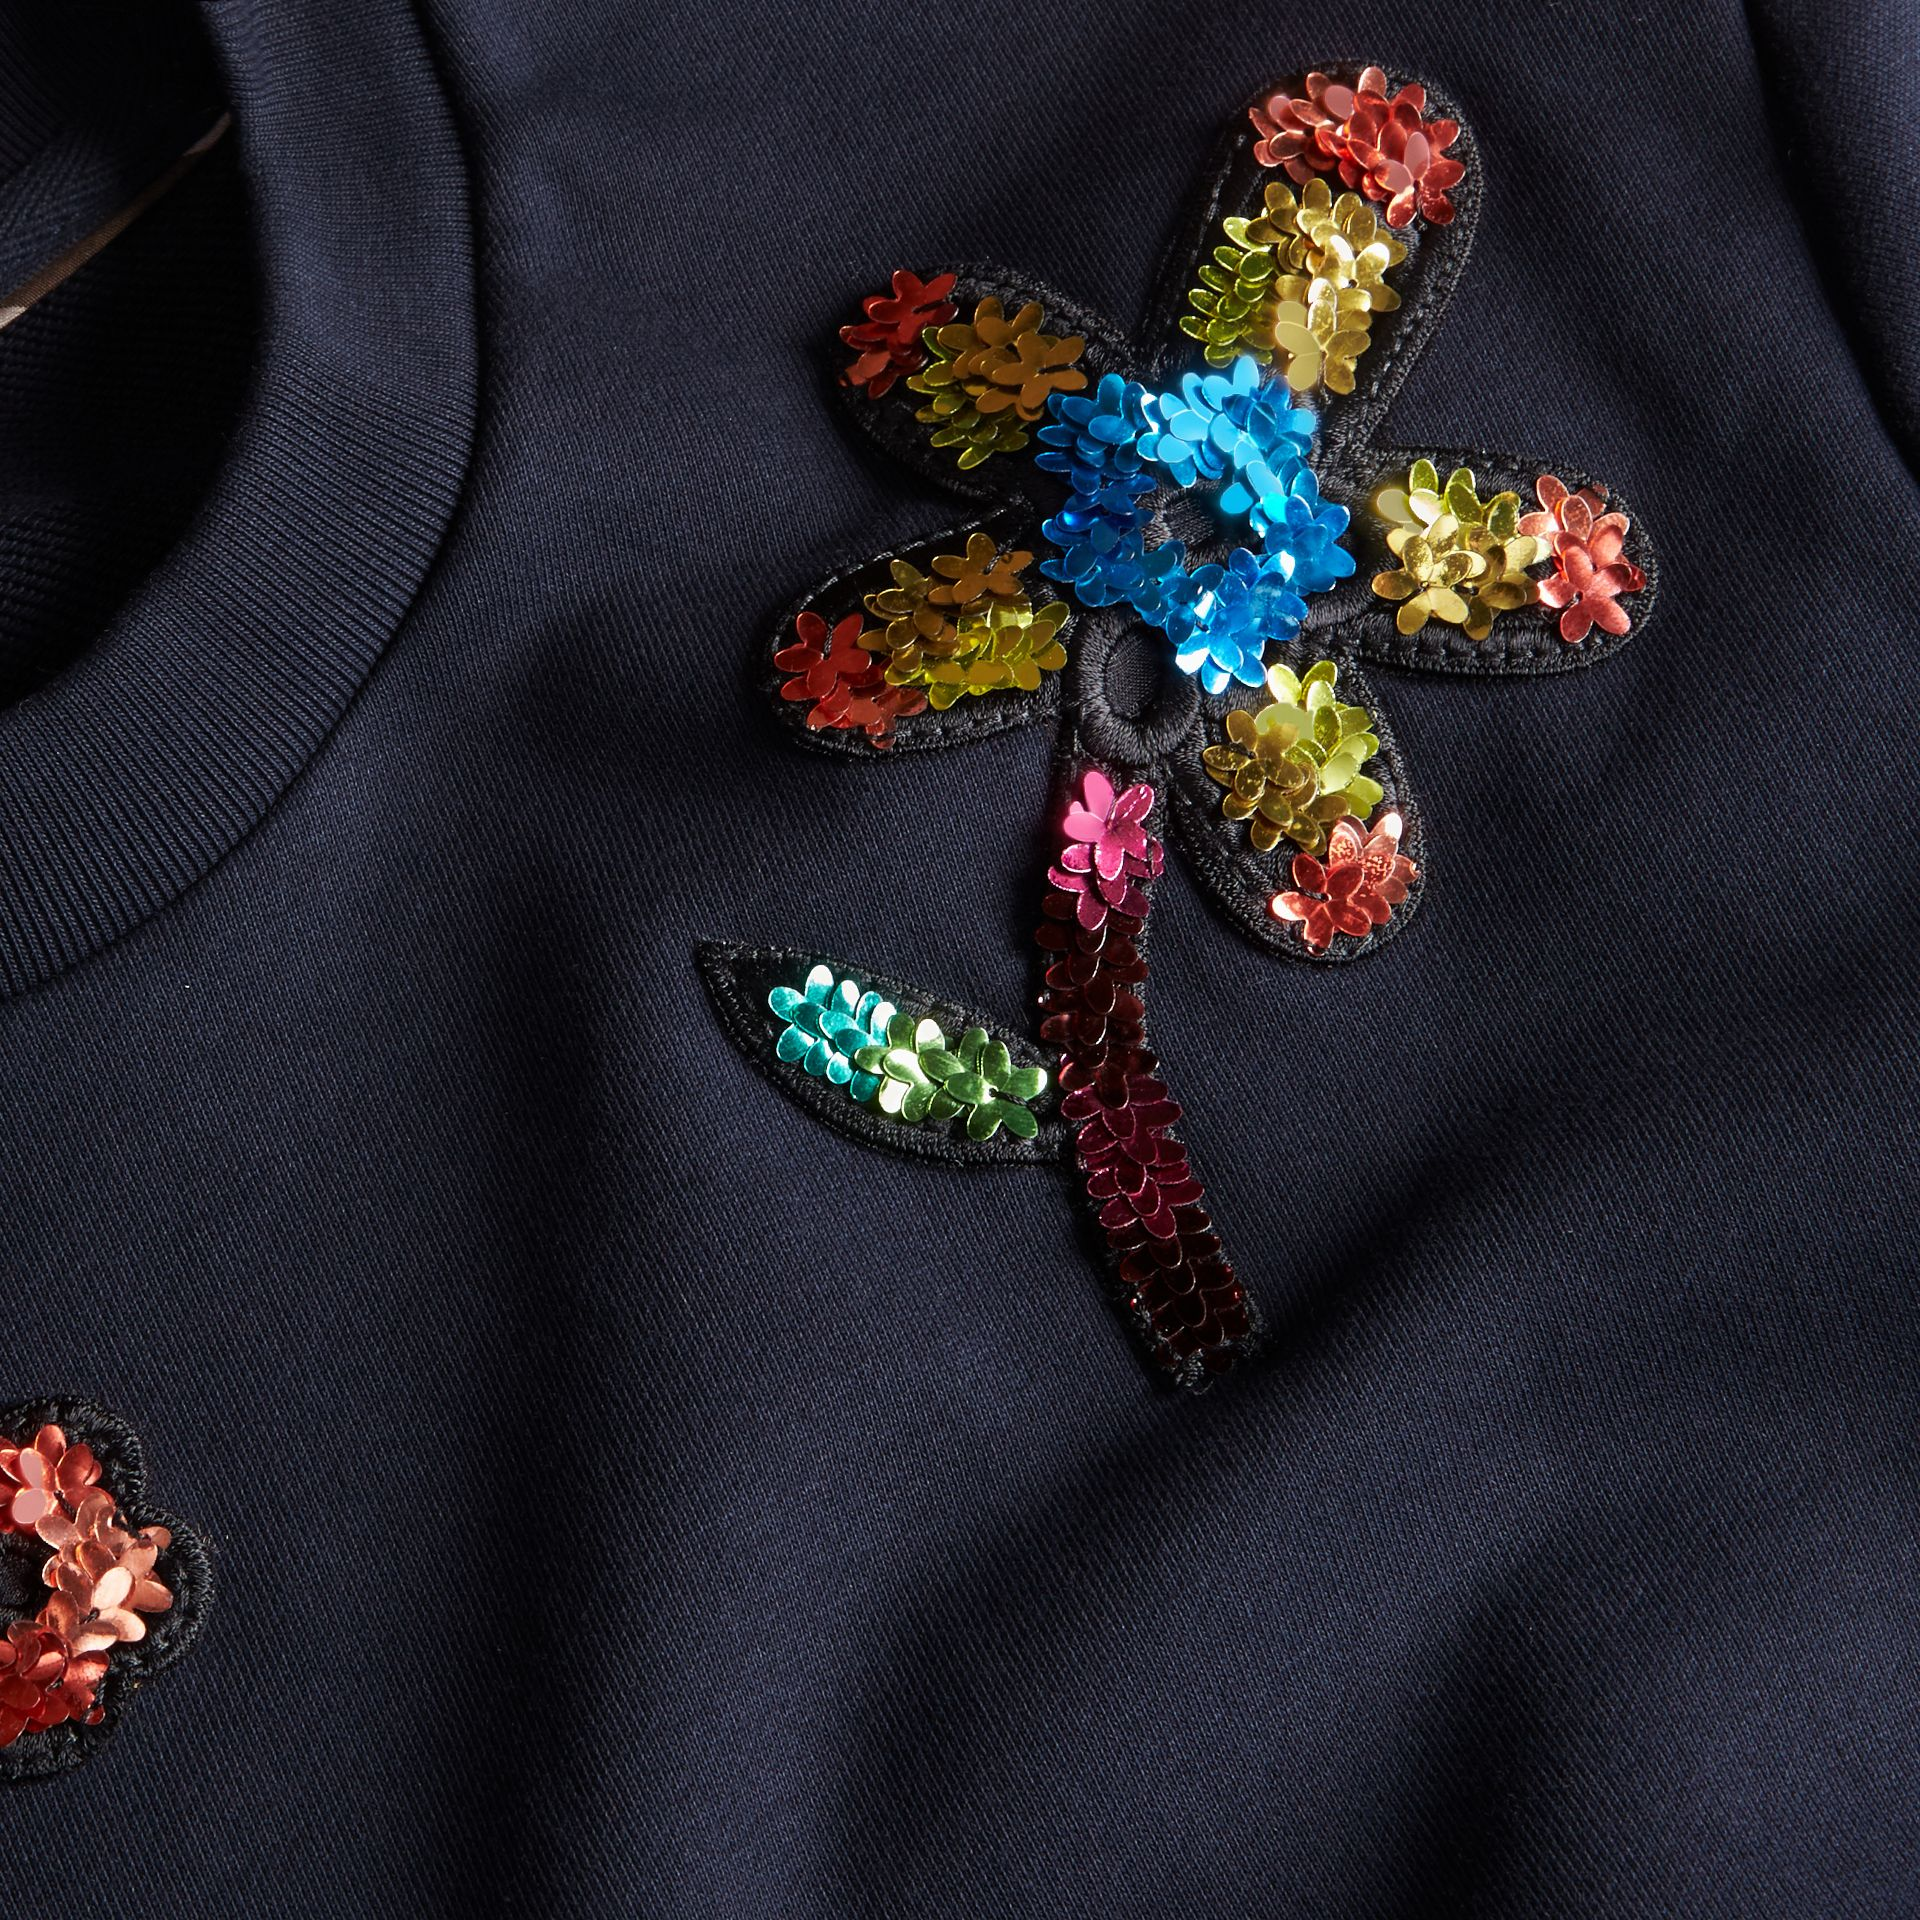 Navy Sequin Floral Appliqué Cotton Sweatshirt Navy - gallery image 2